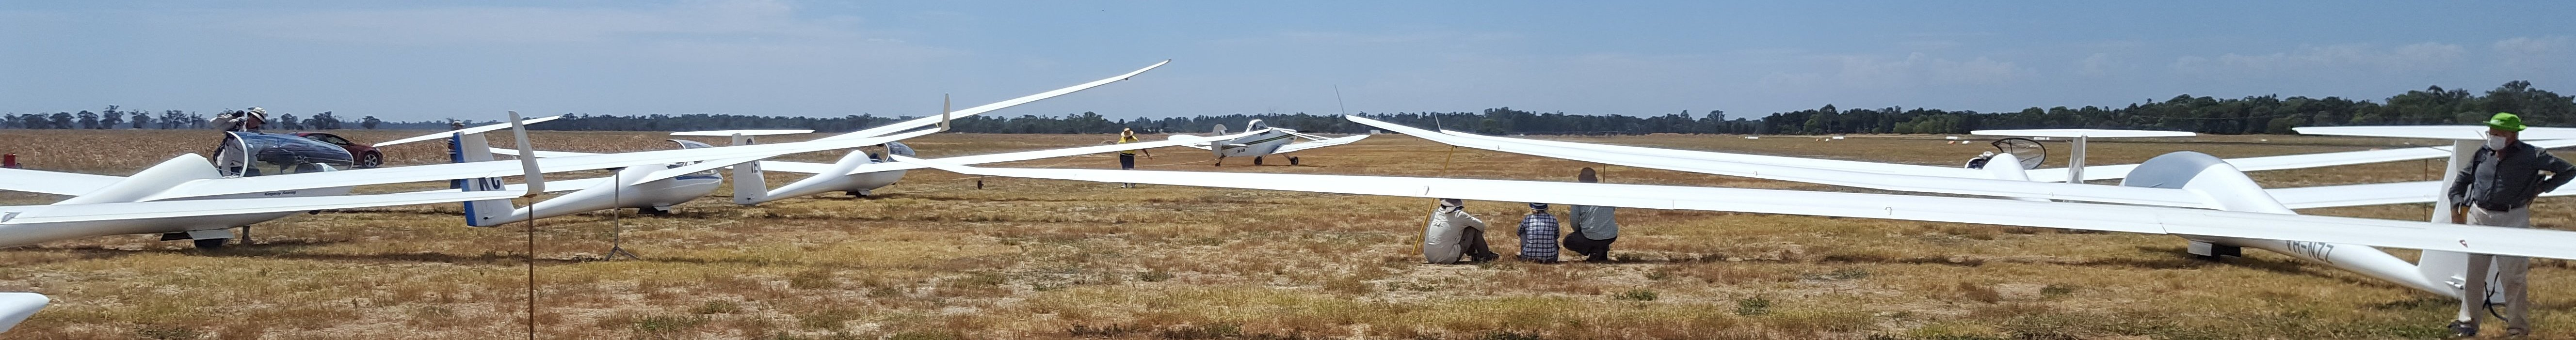 Narromine Gliding Club